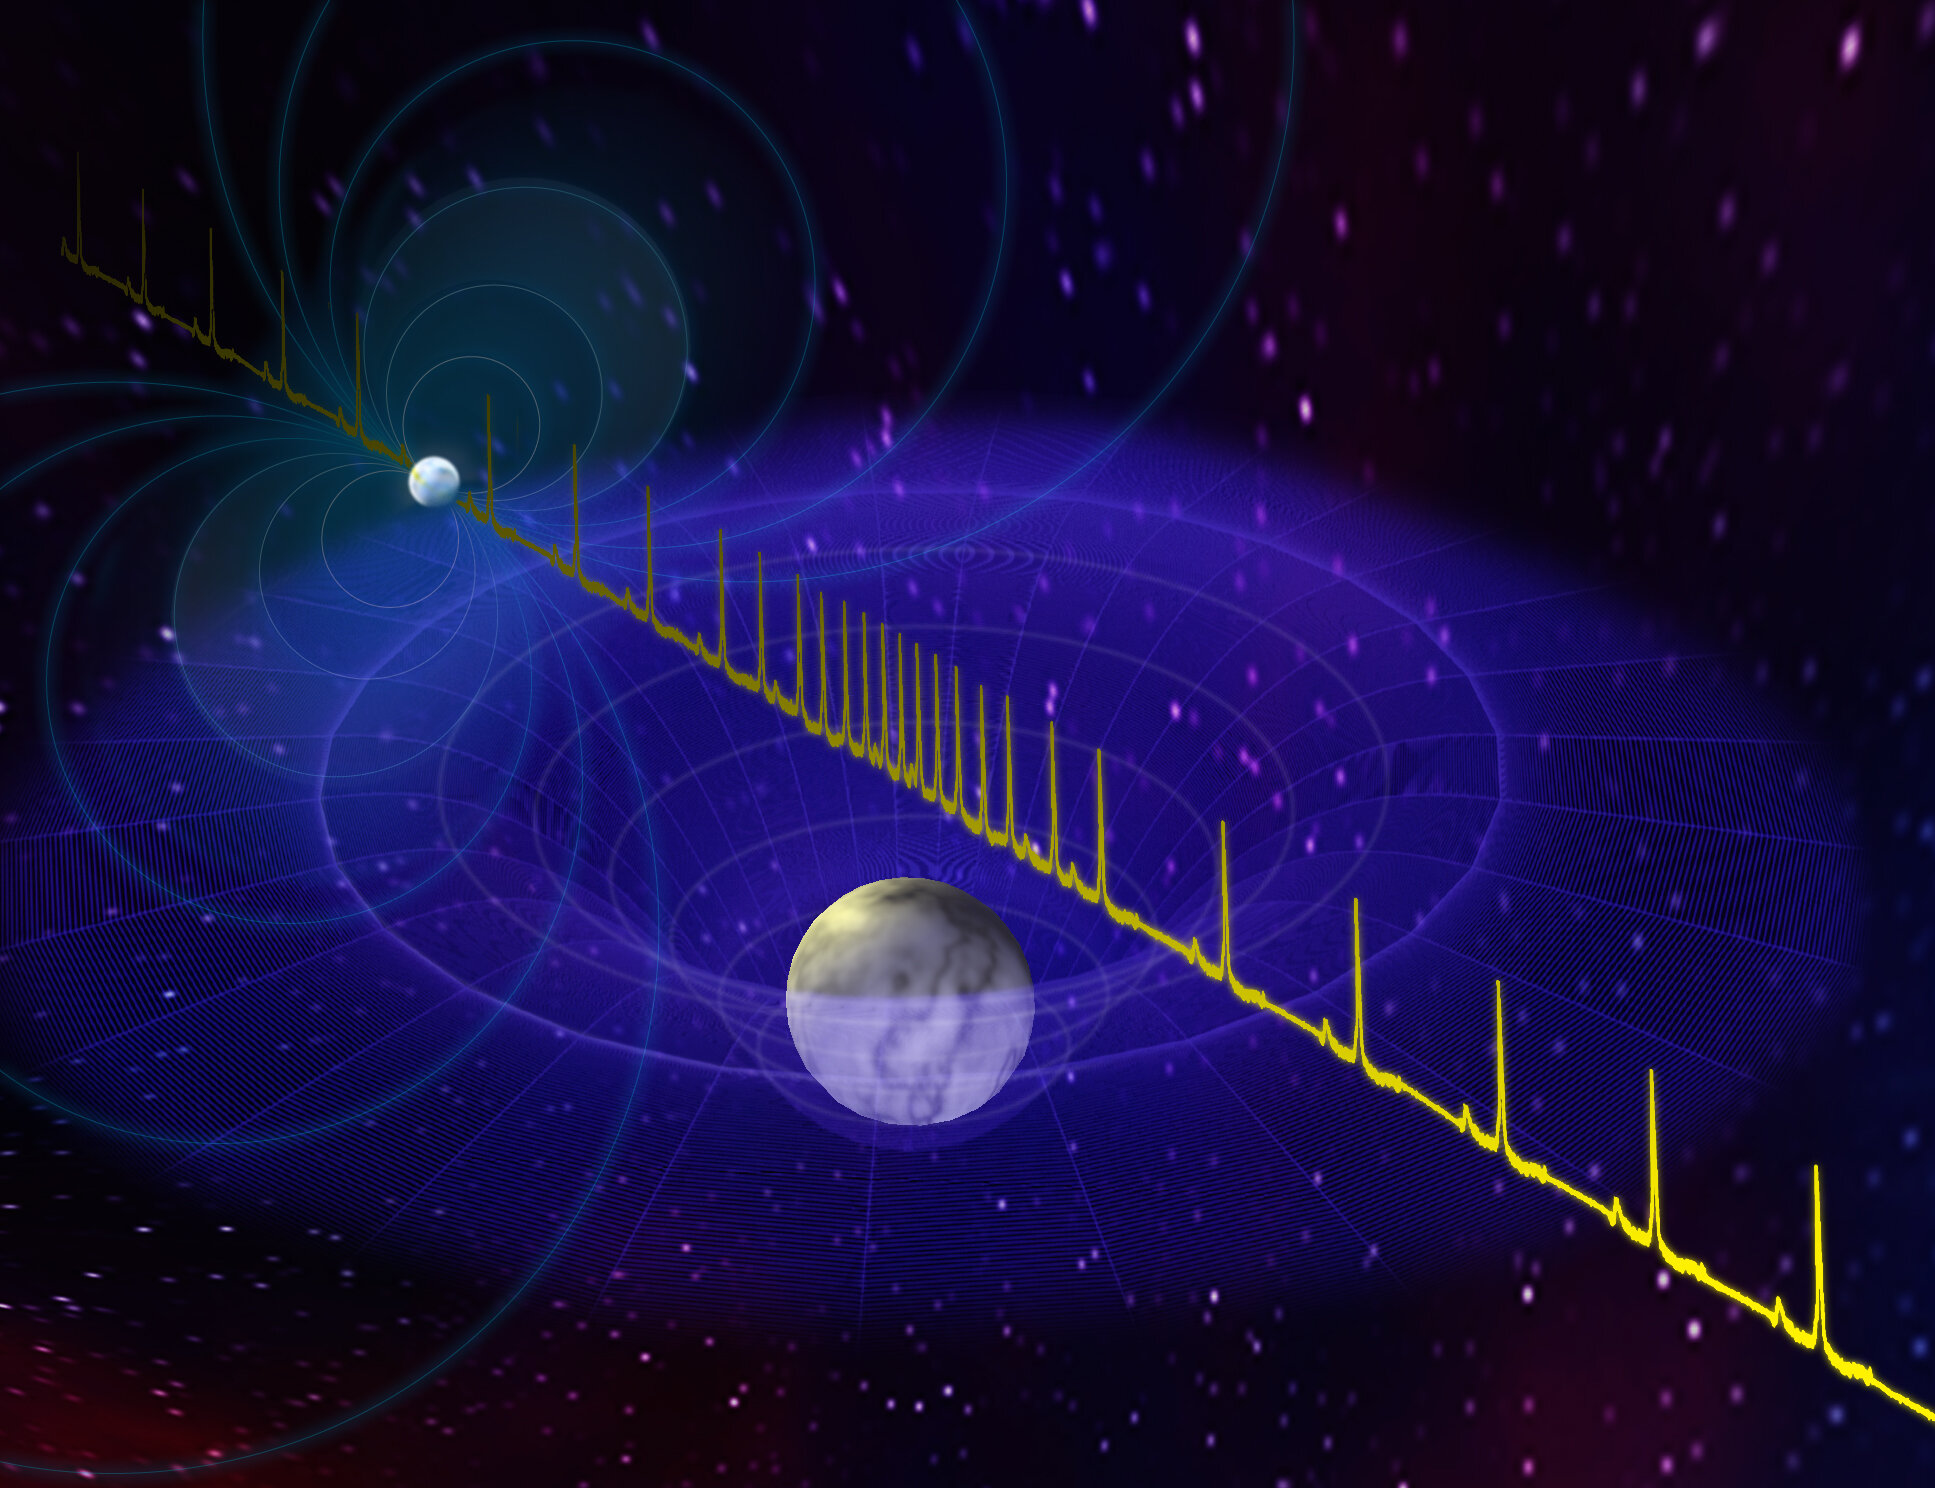 Astronomers detect the most massive neutron star ever measured